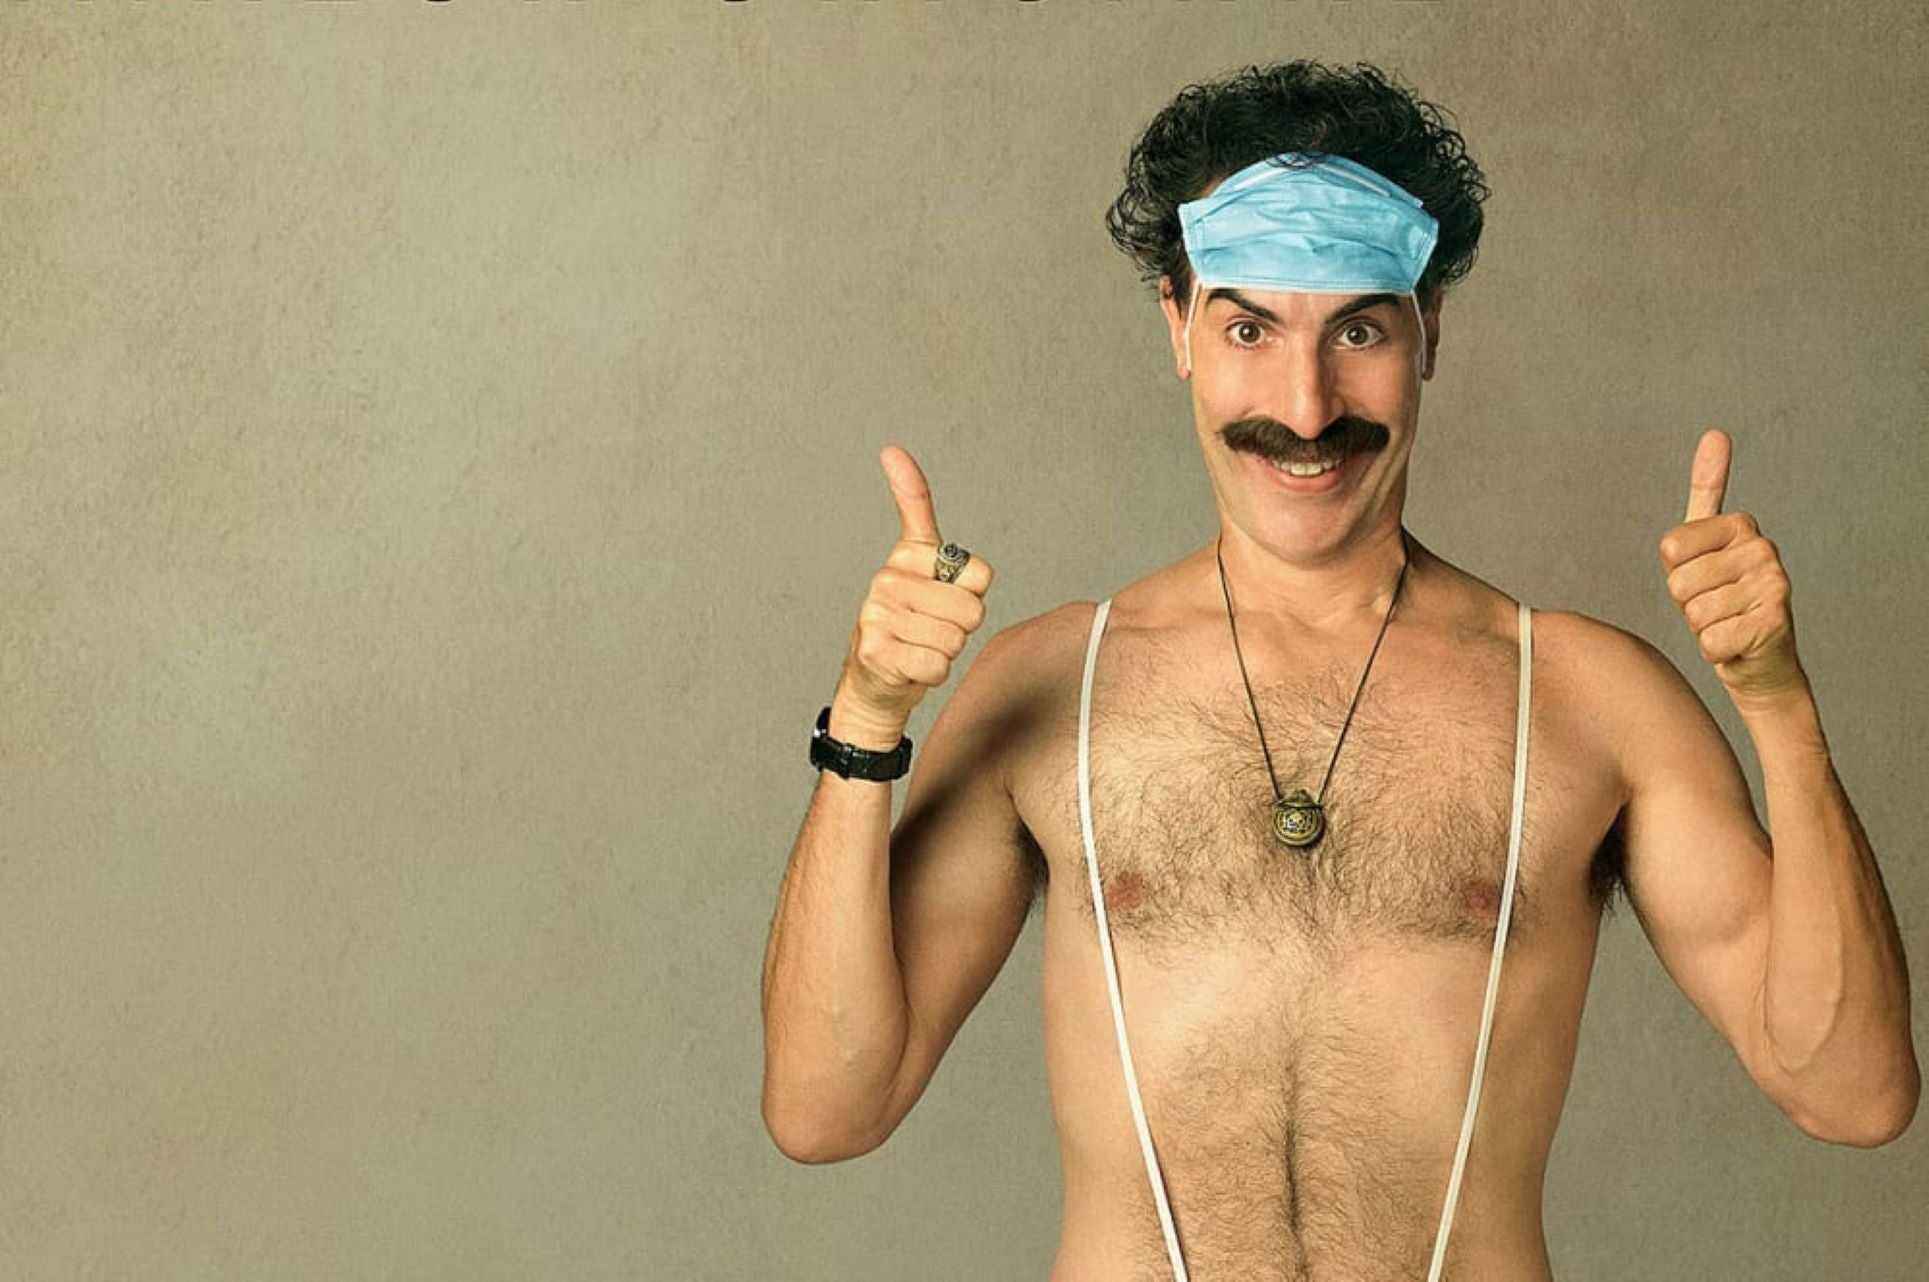 Borat Subsequent Moviefilm brings outrage back to comedy